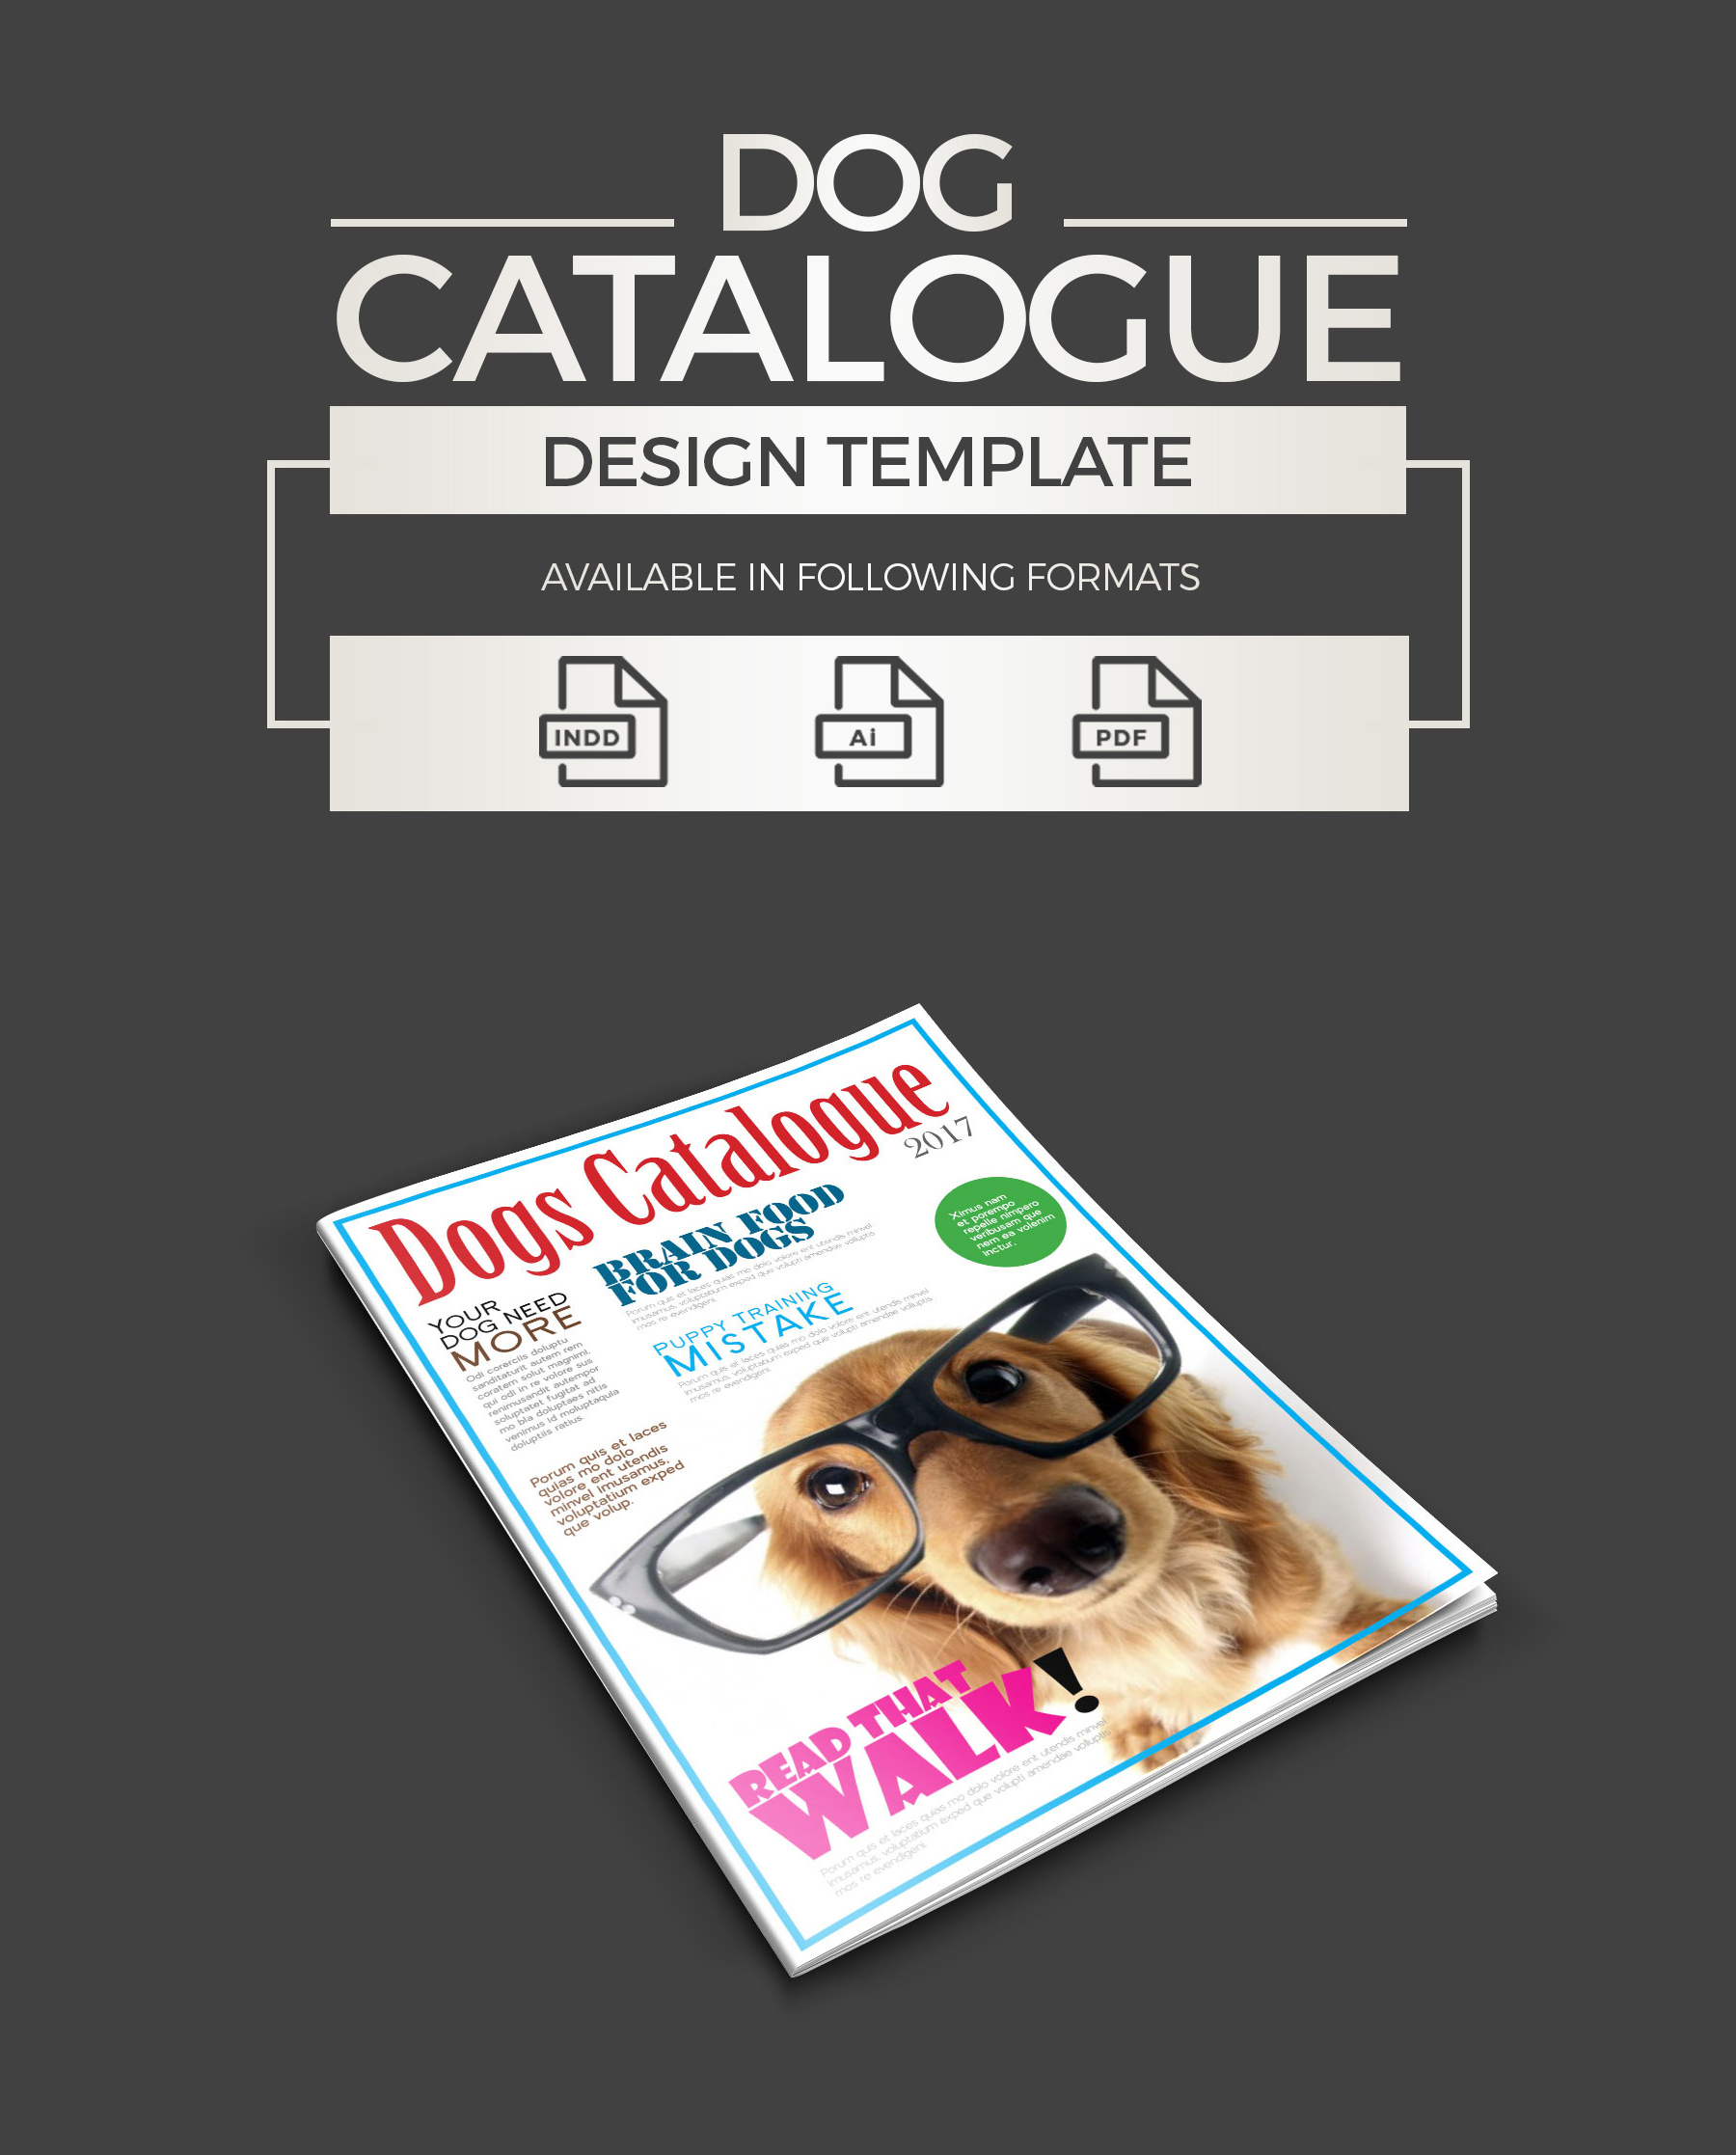 dogs-catalogue-design-template-in-ai-indd-pdf-format